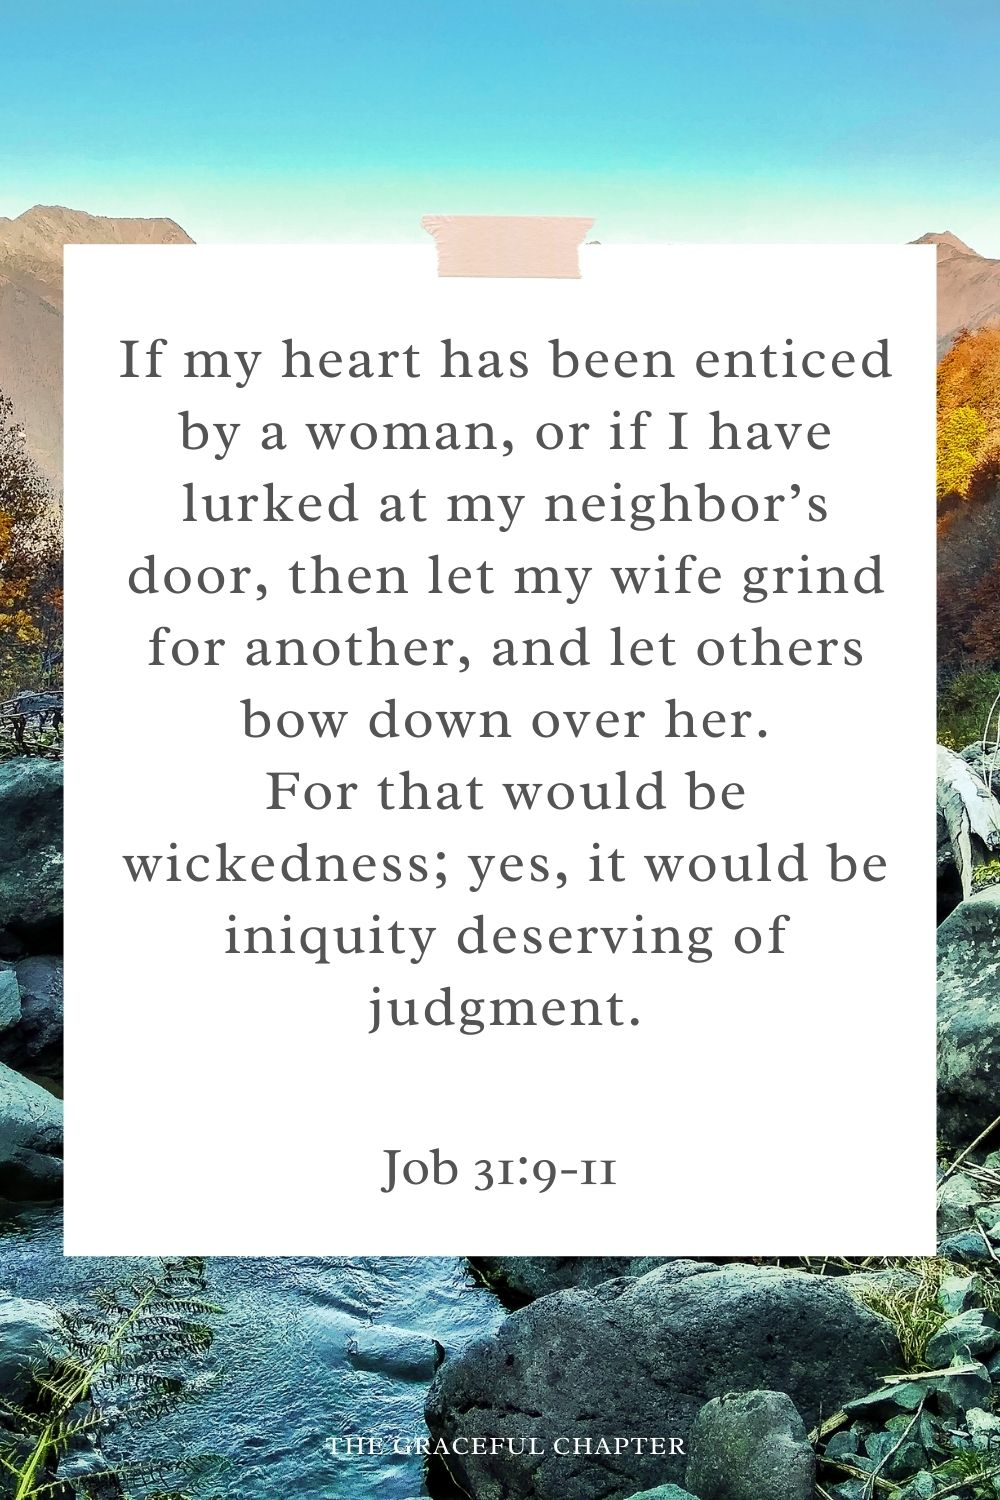 If my heart has been enticed by a woman, orifI have lurked at my neighbor's door, thenlet my wife grind foranother, and let others bow down over her. For thatwould bewickedness; yes,itwould beiniquitydeserving ofjudgment. Job 31:9-11